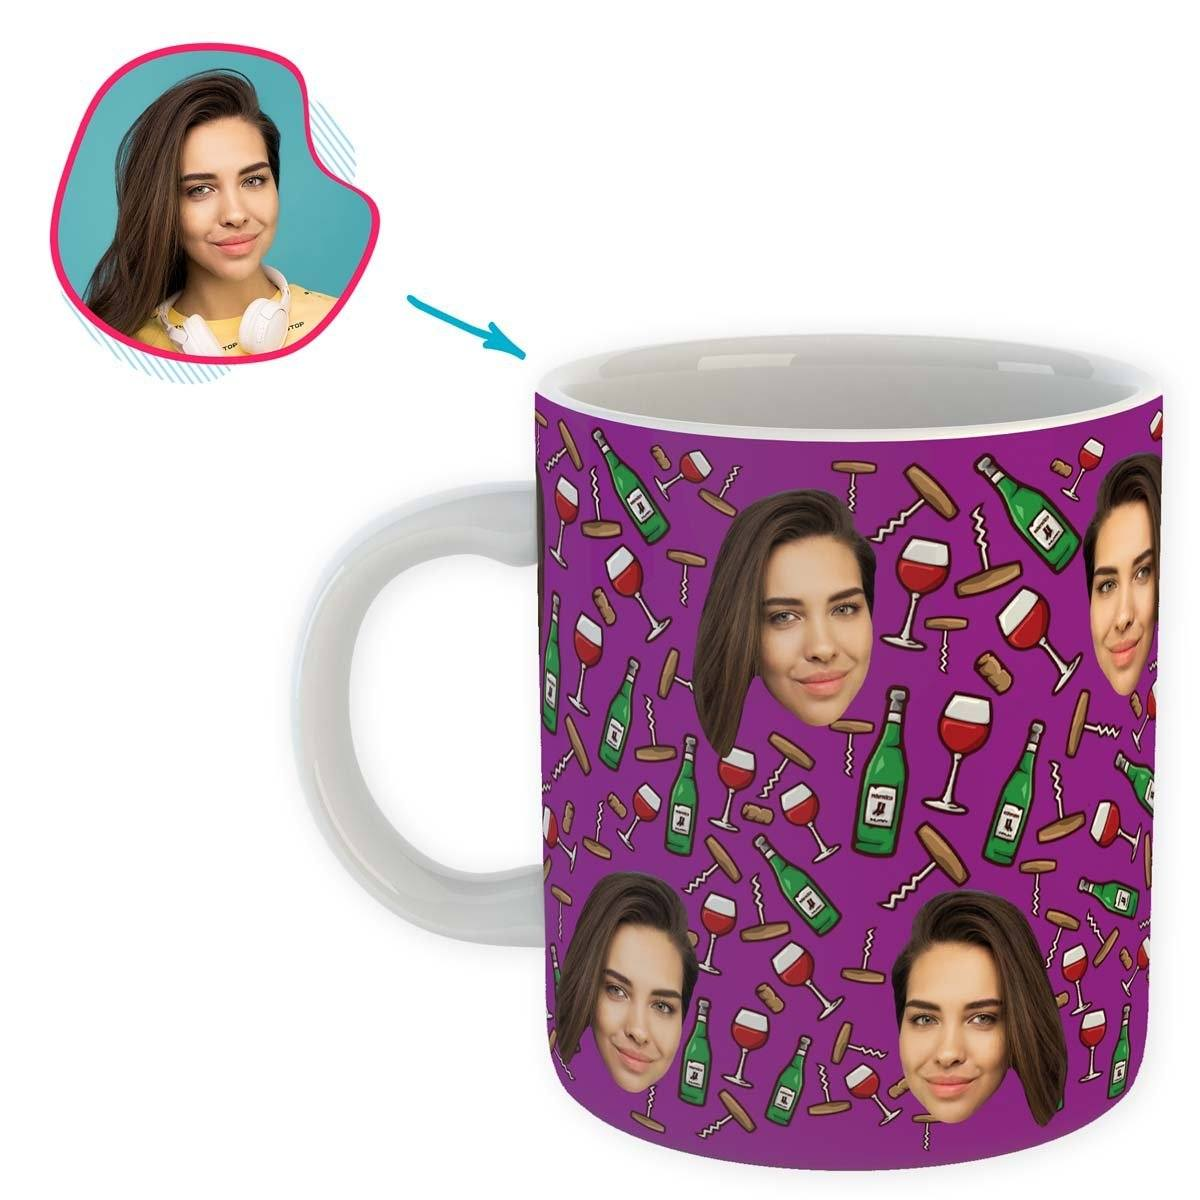 purple Wine mug personalized with photo of face printed on it